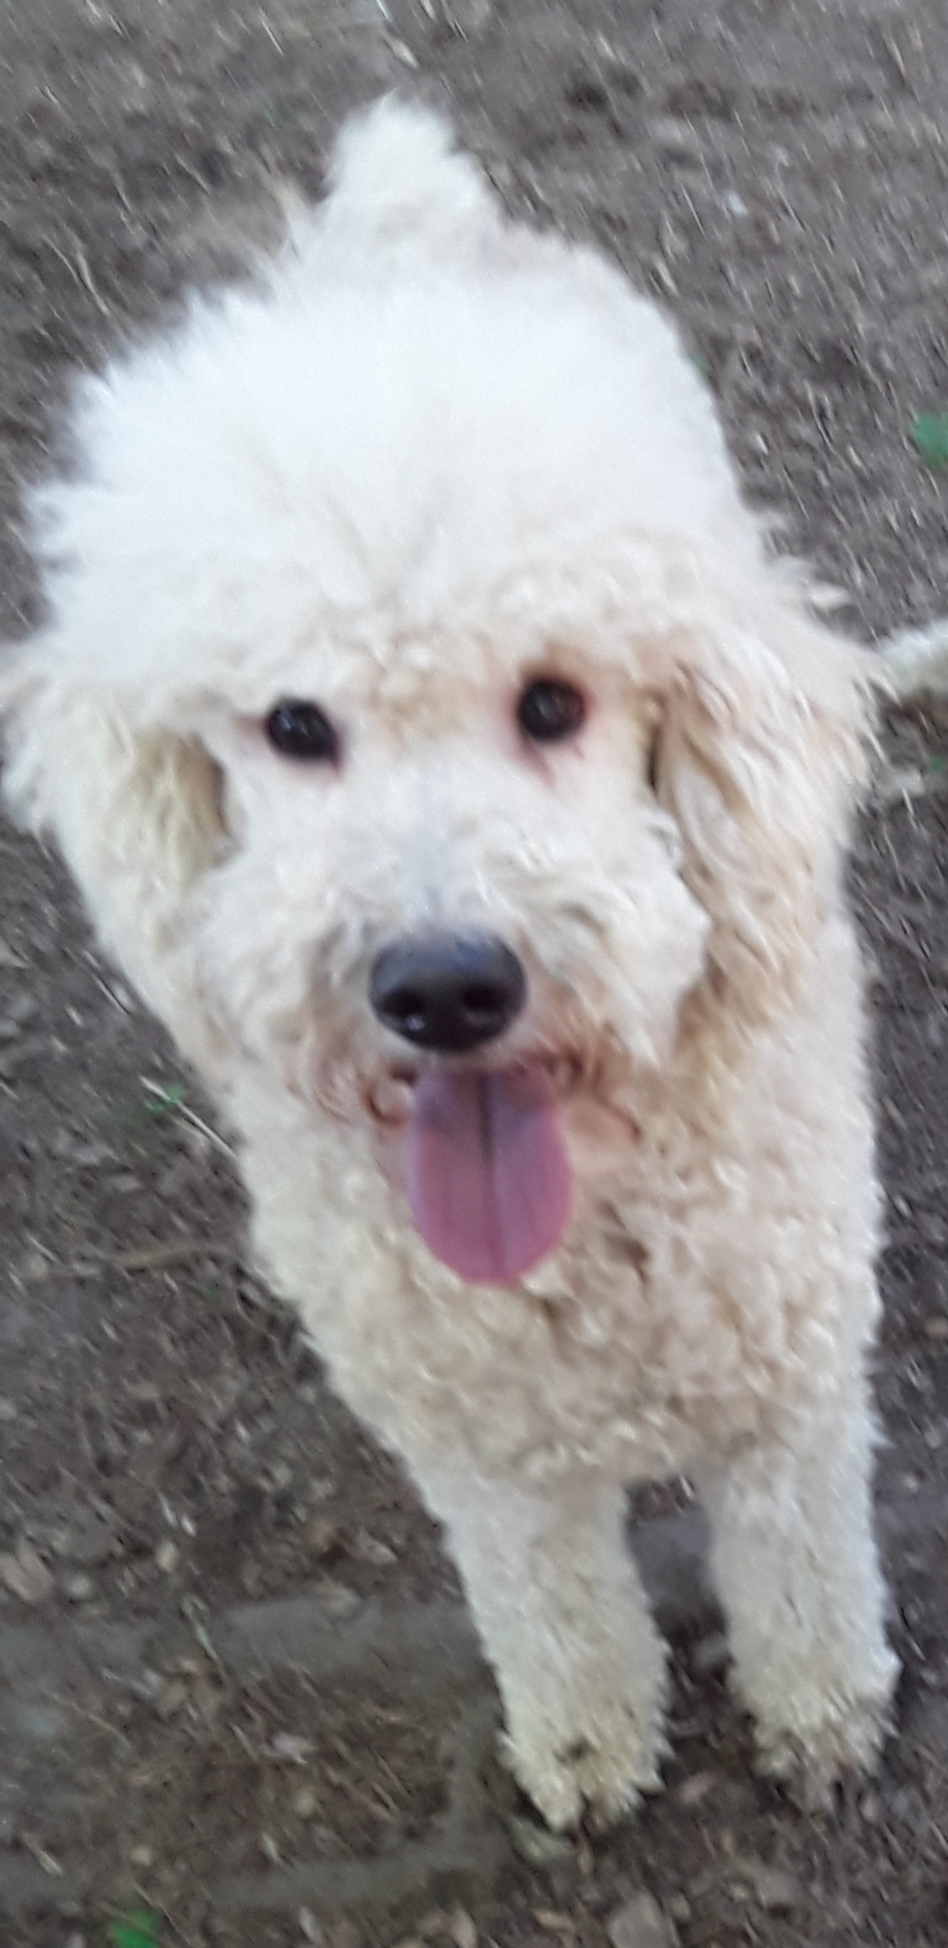 Adoptable Dogs | Georgia Poodle Rescue